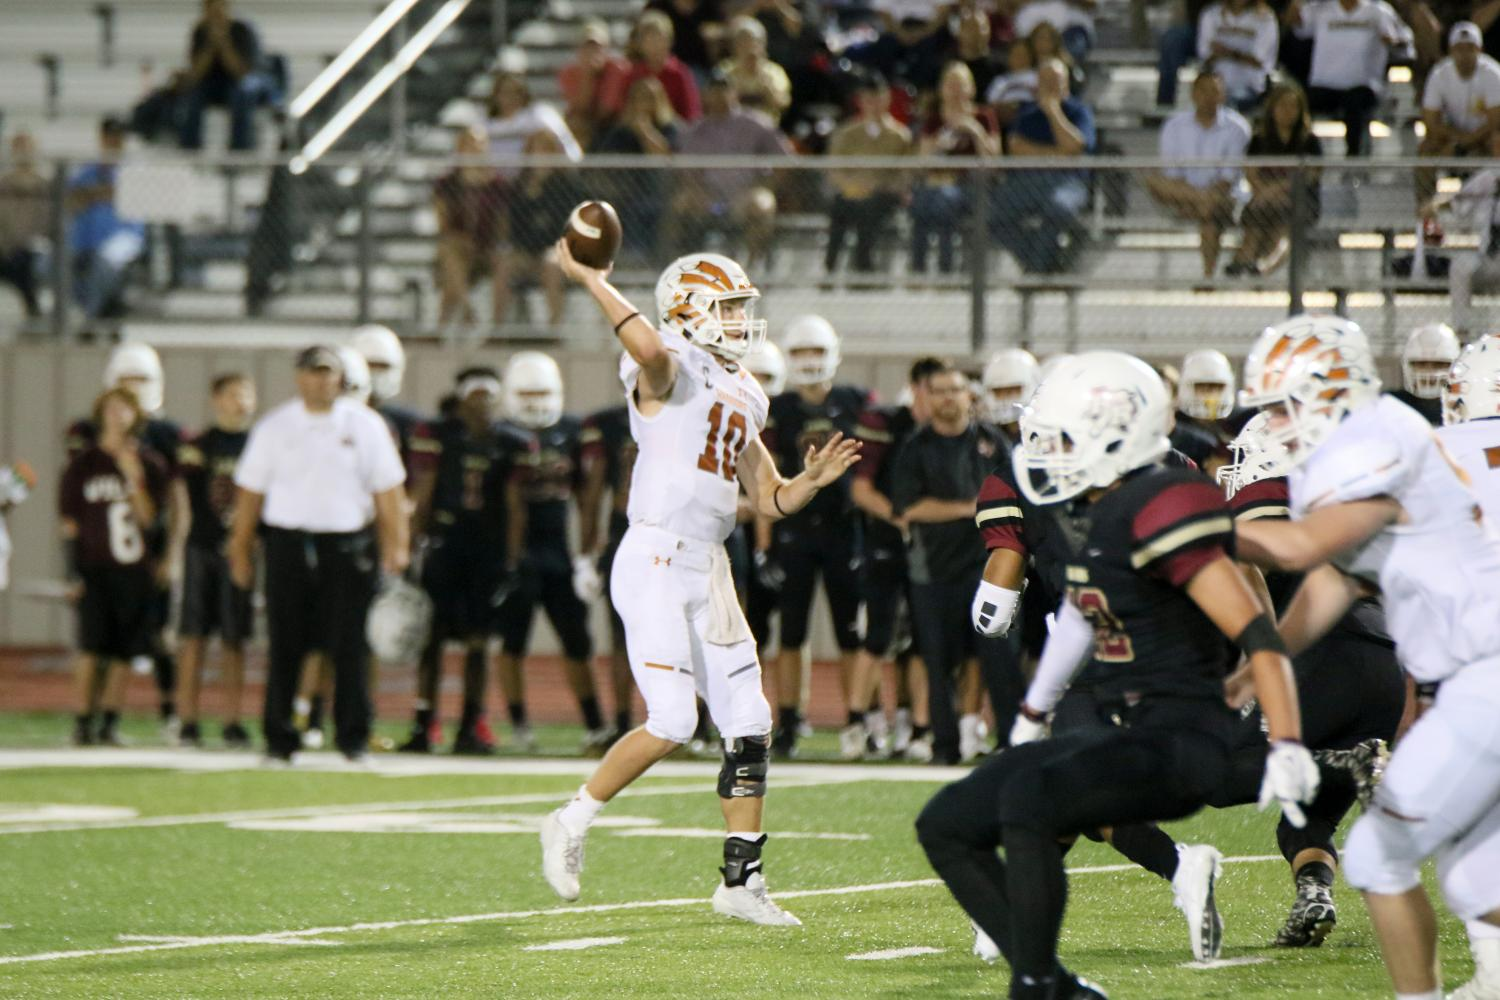 Quarterback Will Jennings '18 throws the ball to an open receiver.